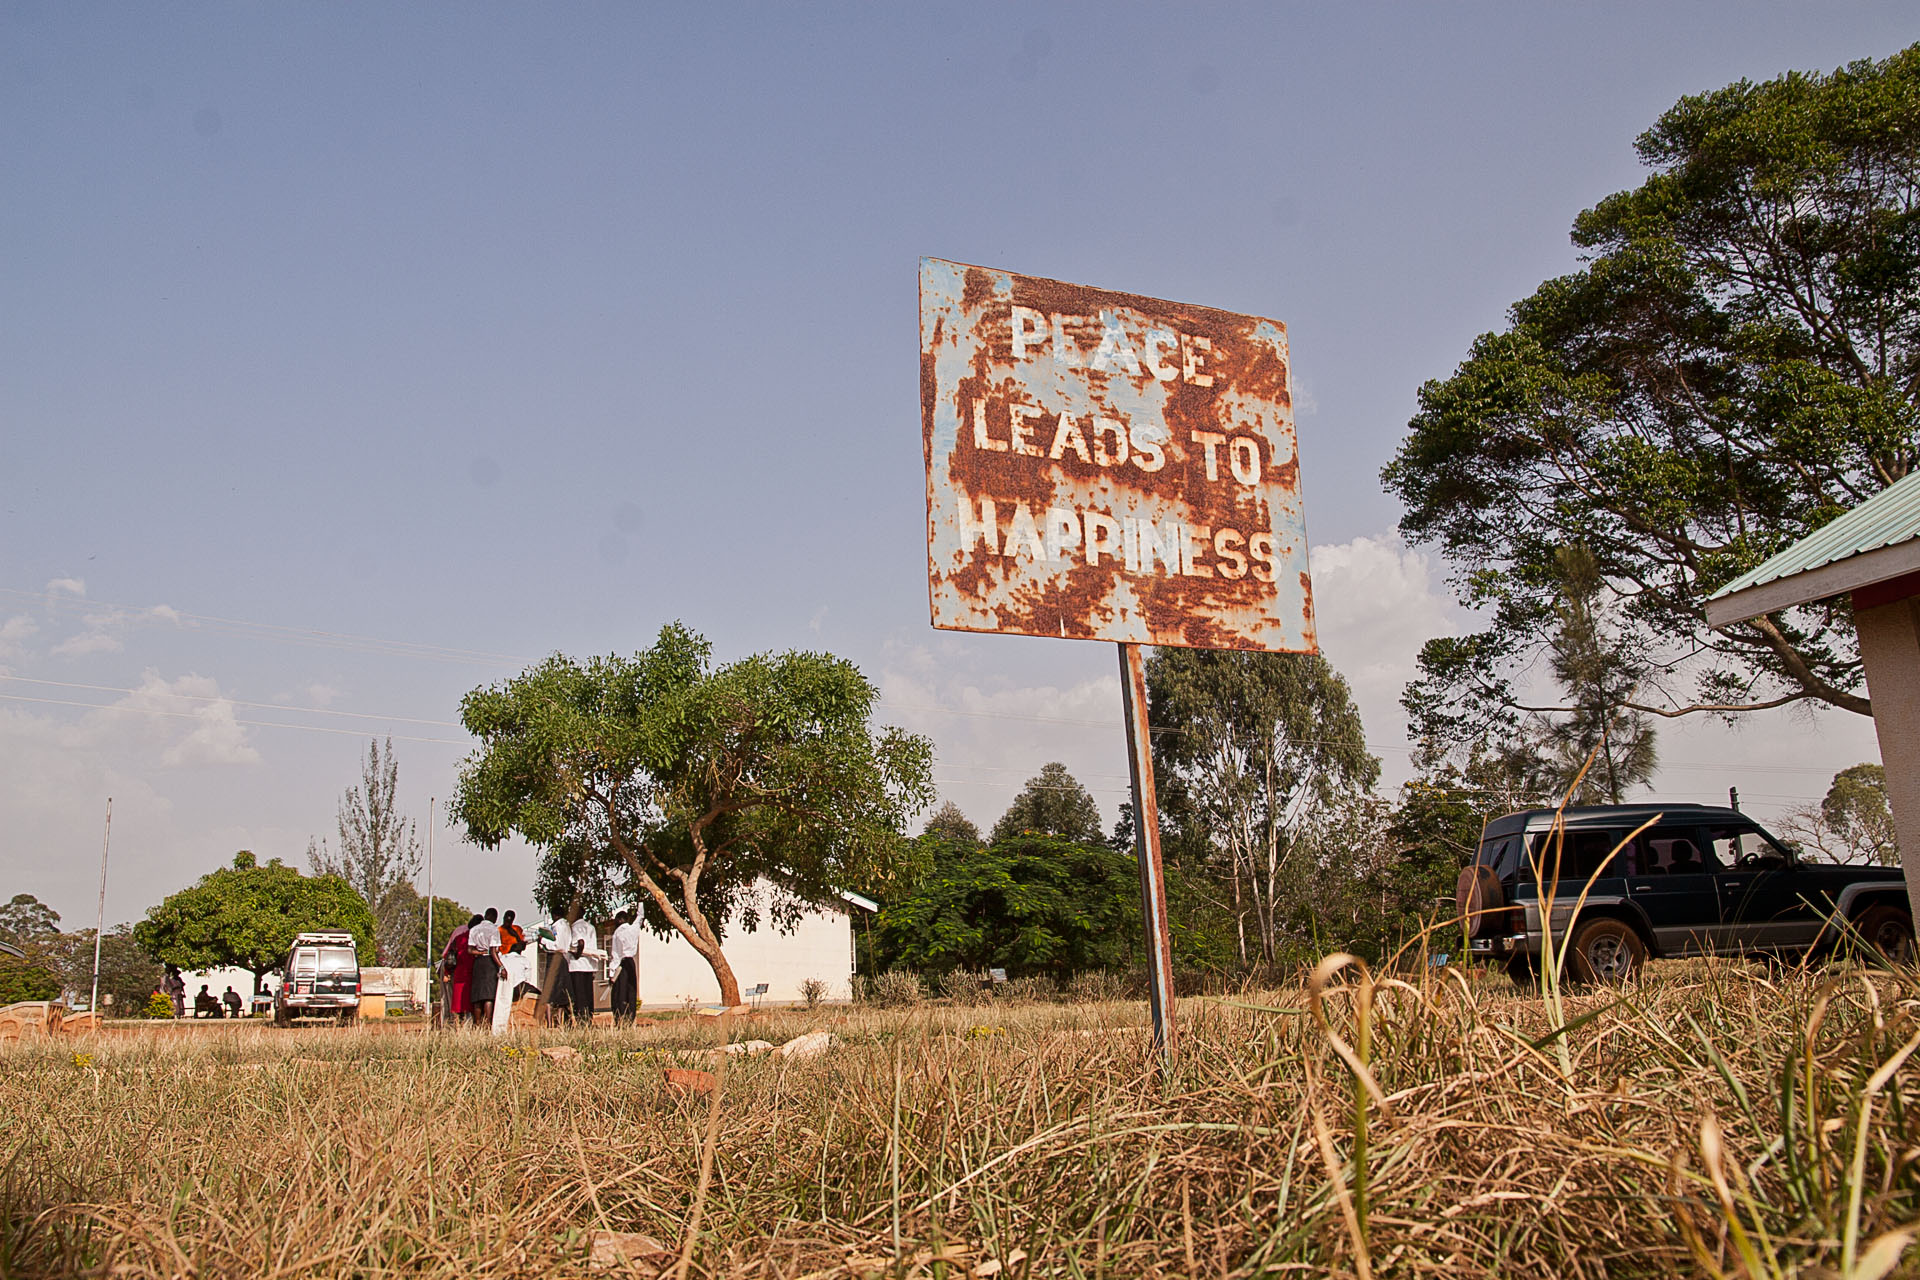 Rusty roadside sign that reads 'peace will make us happy'